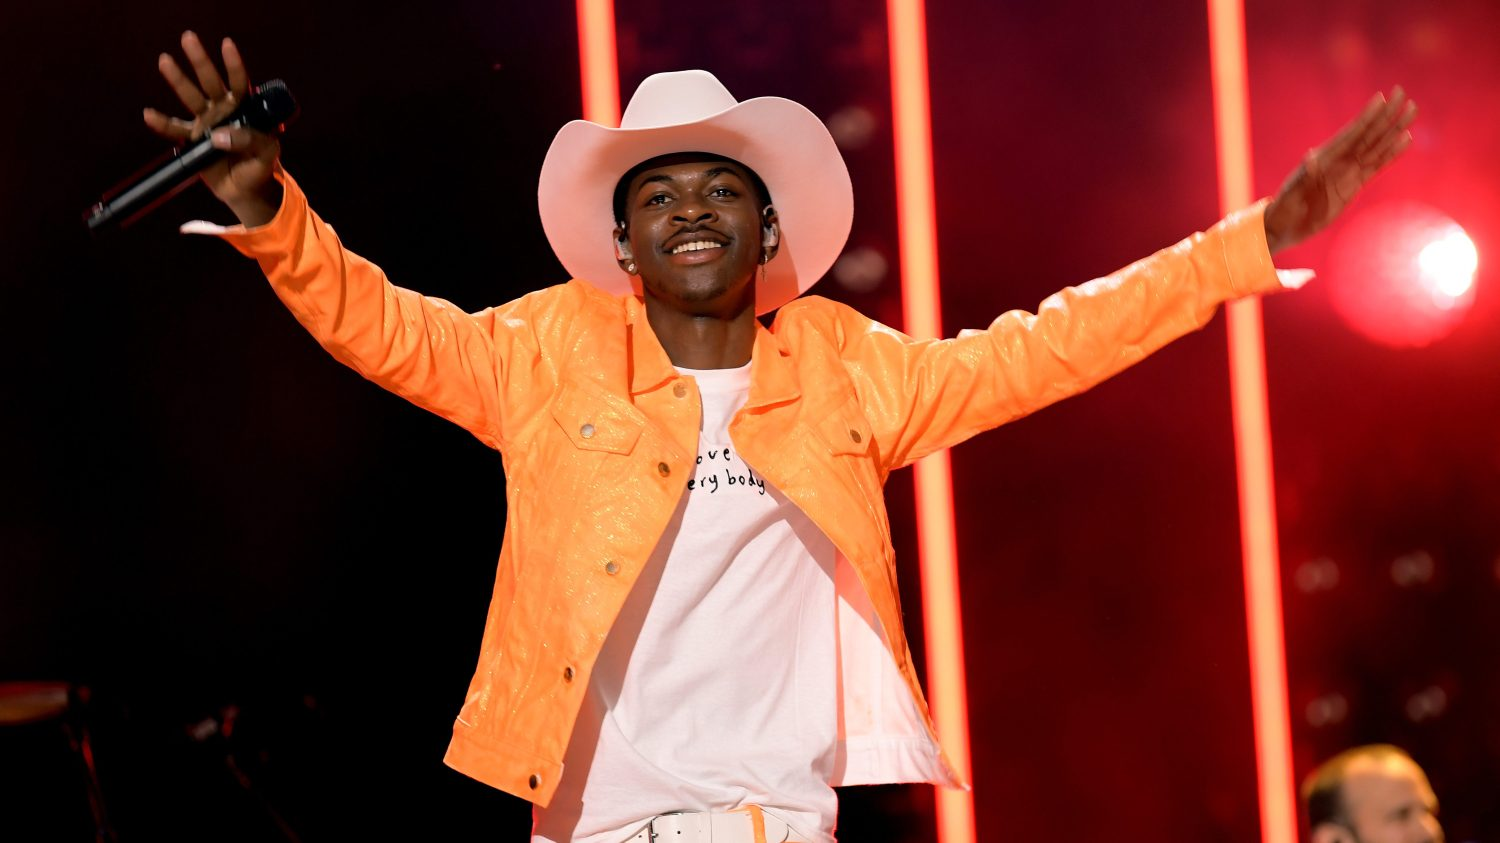 Lil Nas X and Blanco Brown show that cultural appropriation